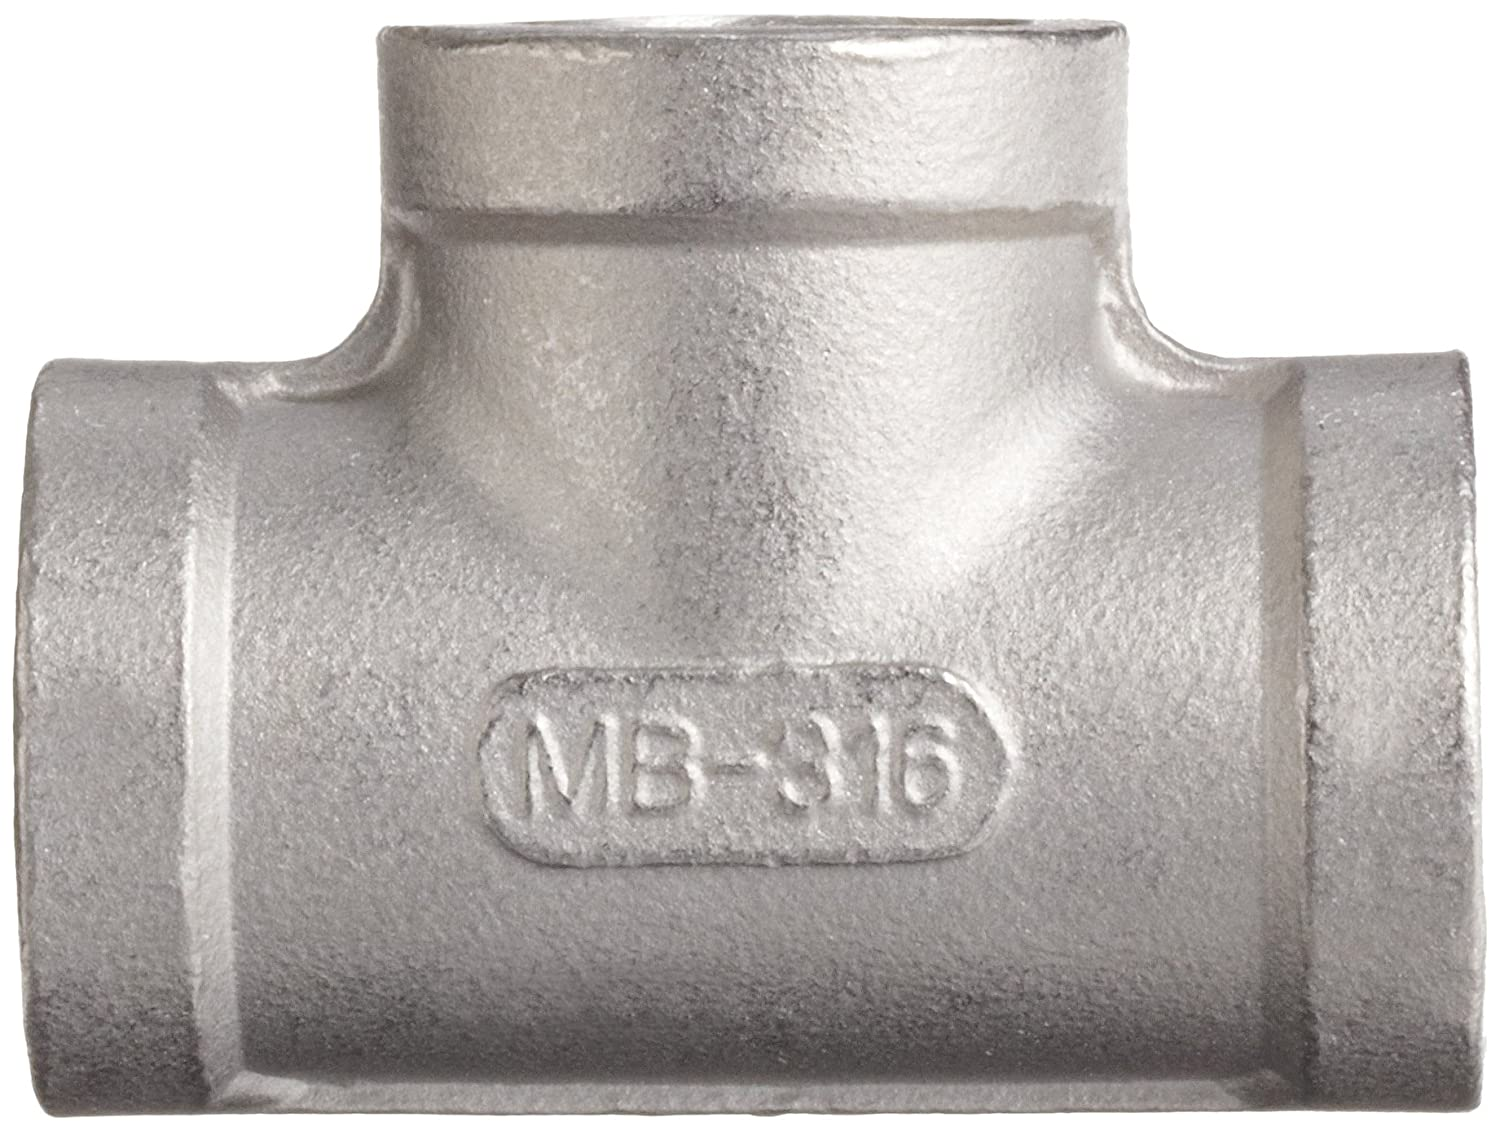 Class 150 Tee Stainless Steel 316 Cast Pipe Fitting 1 NPT Female